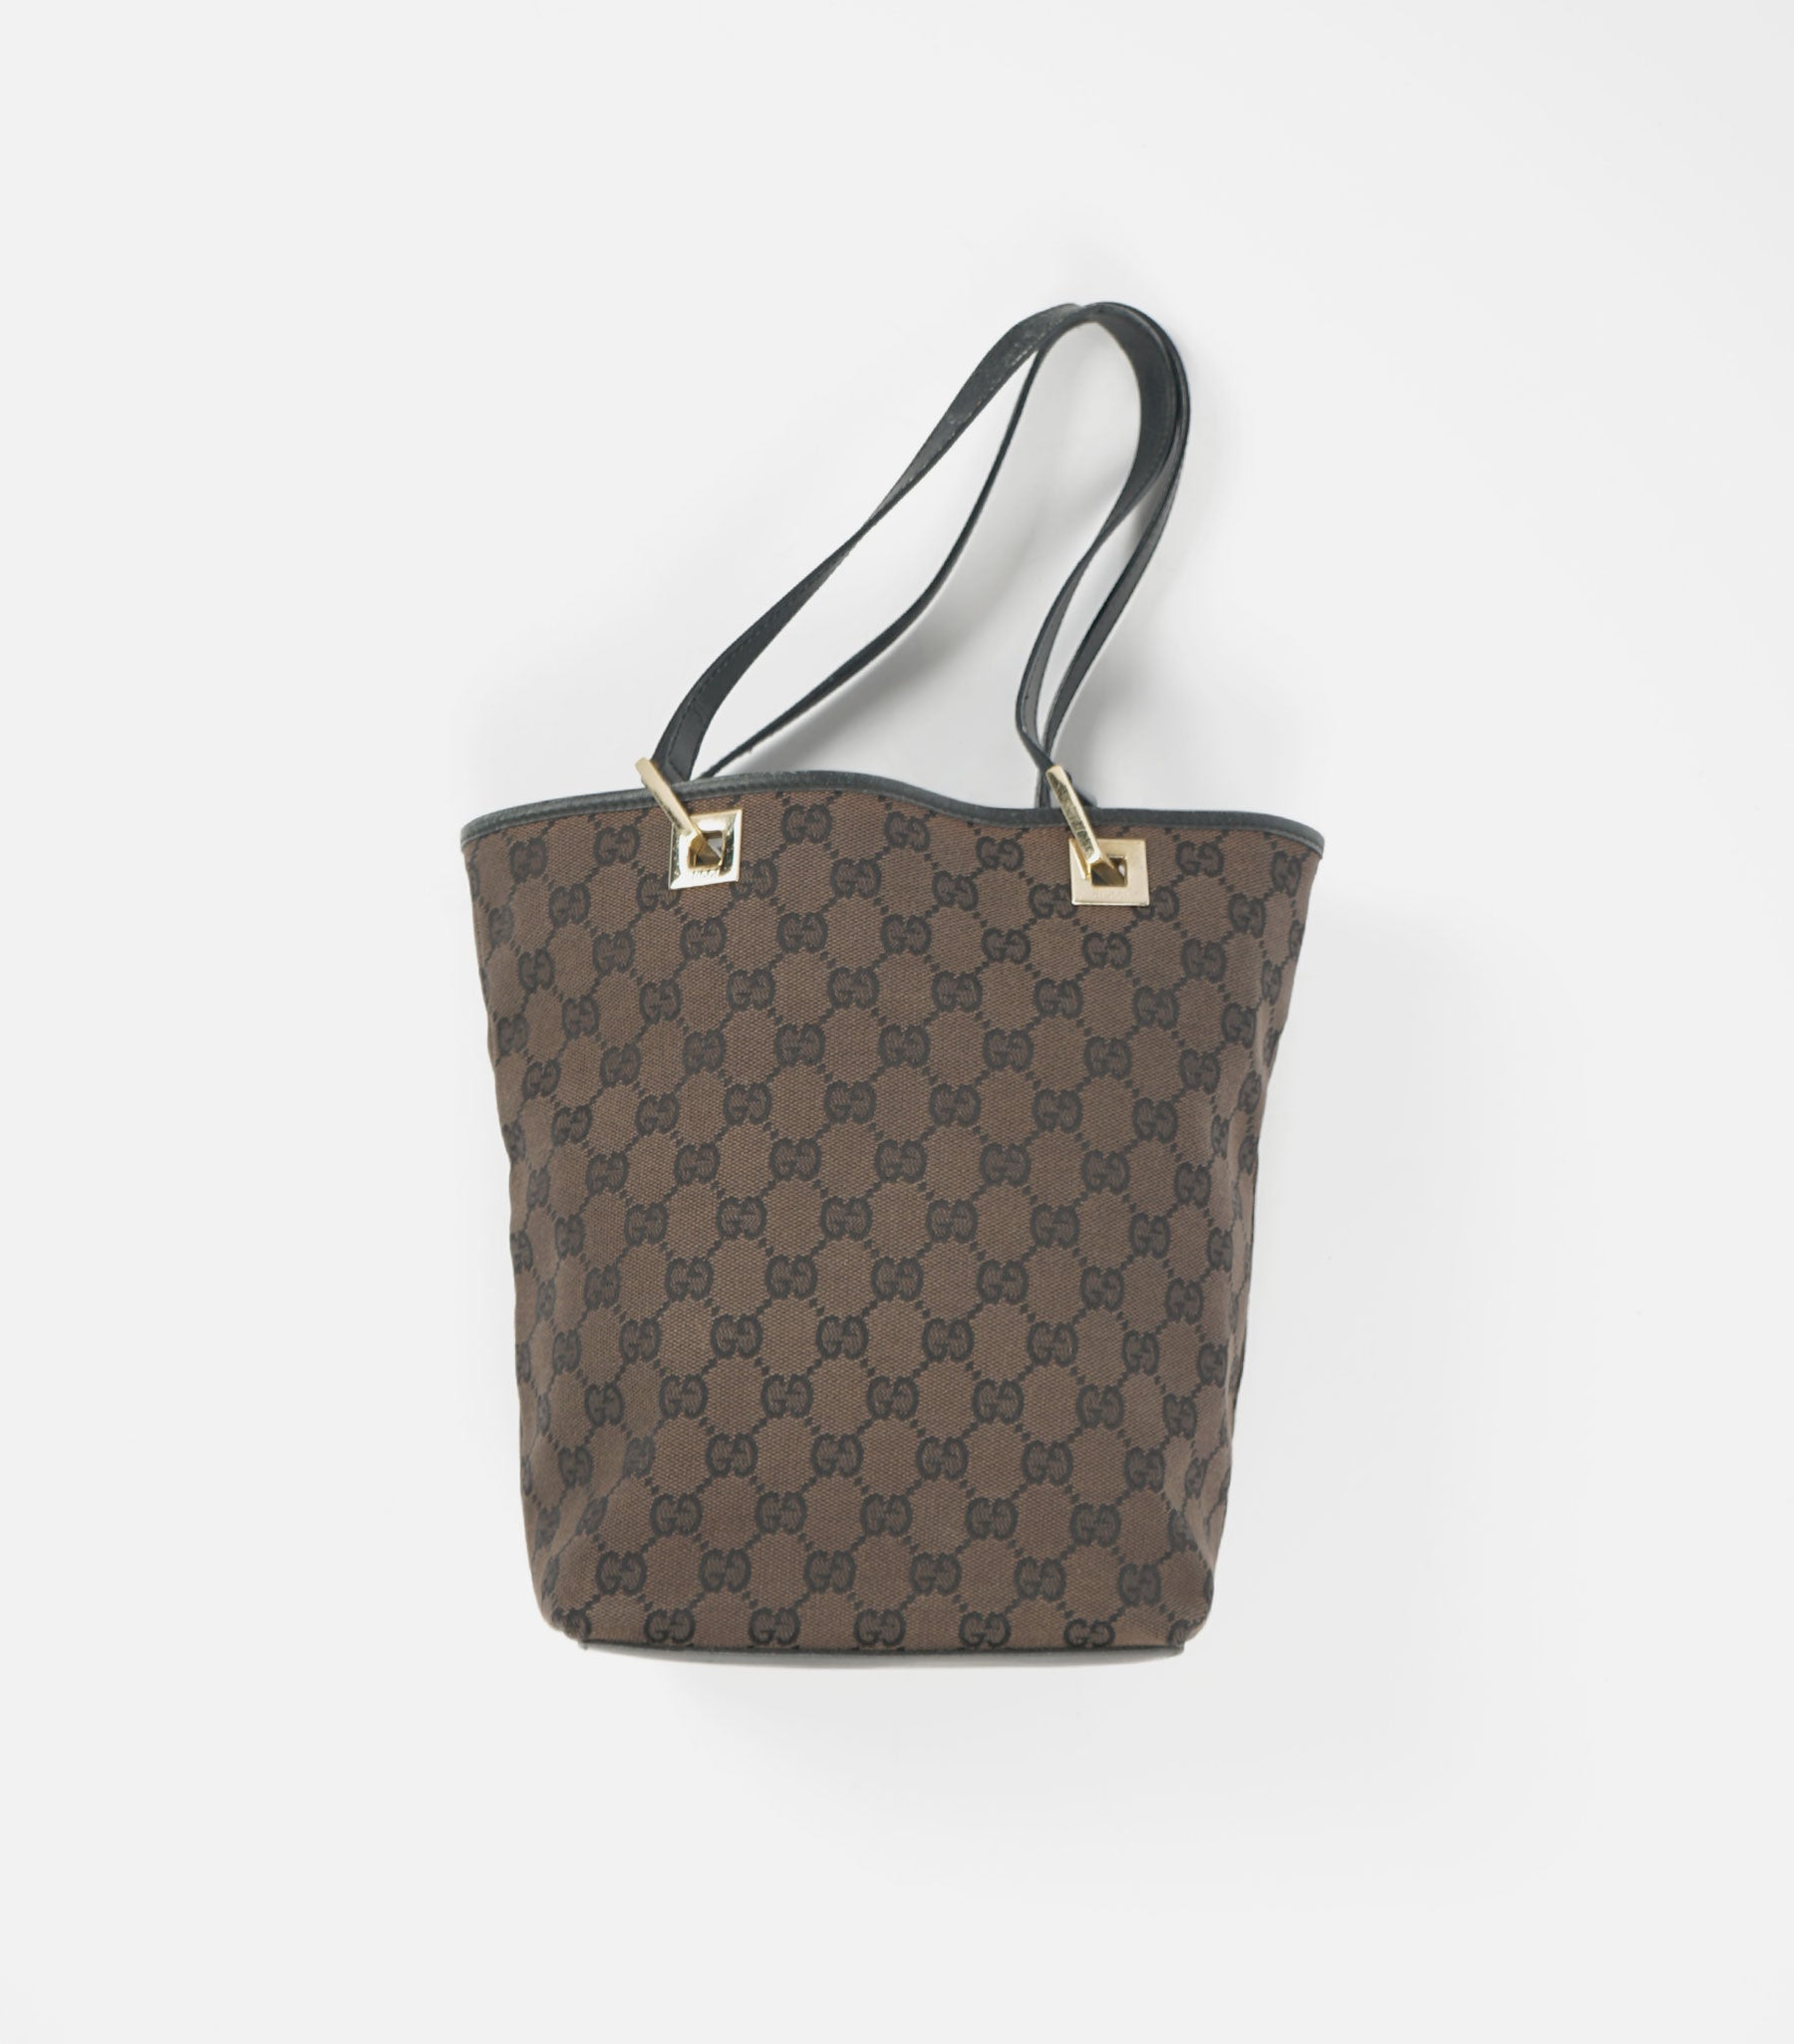 Monogram Nylon Tote Bag